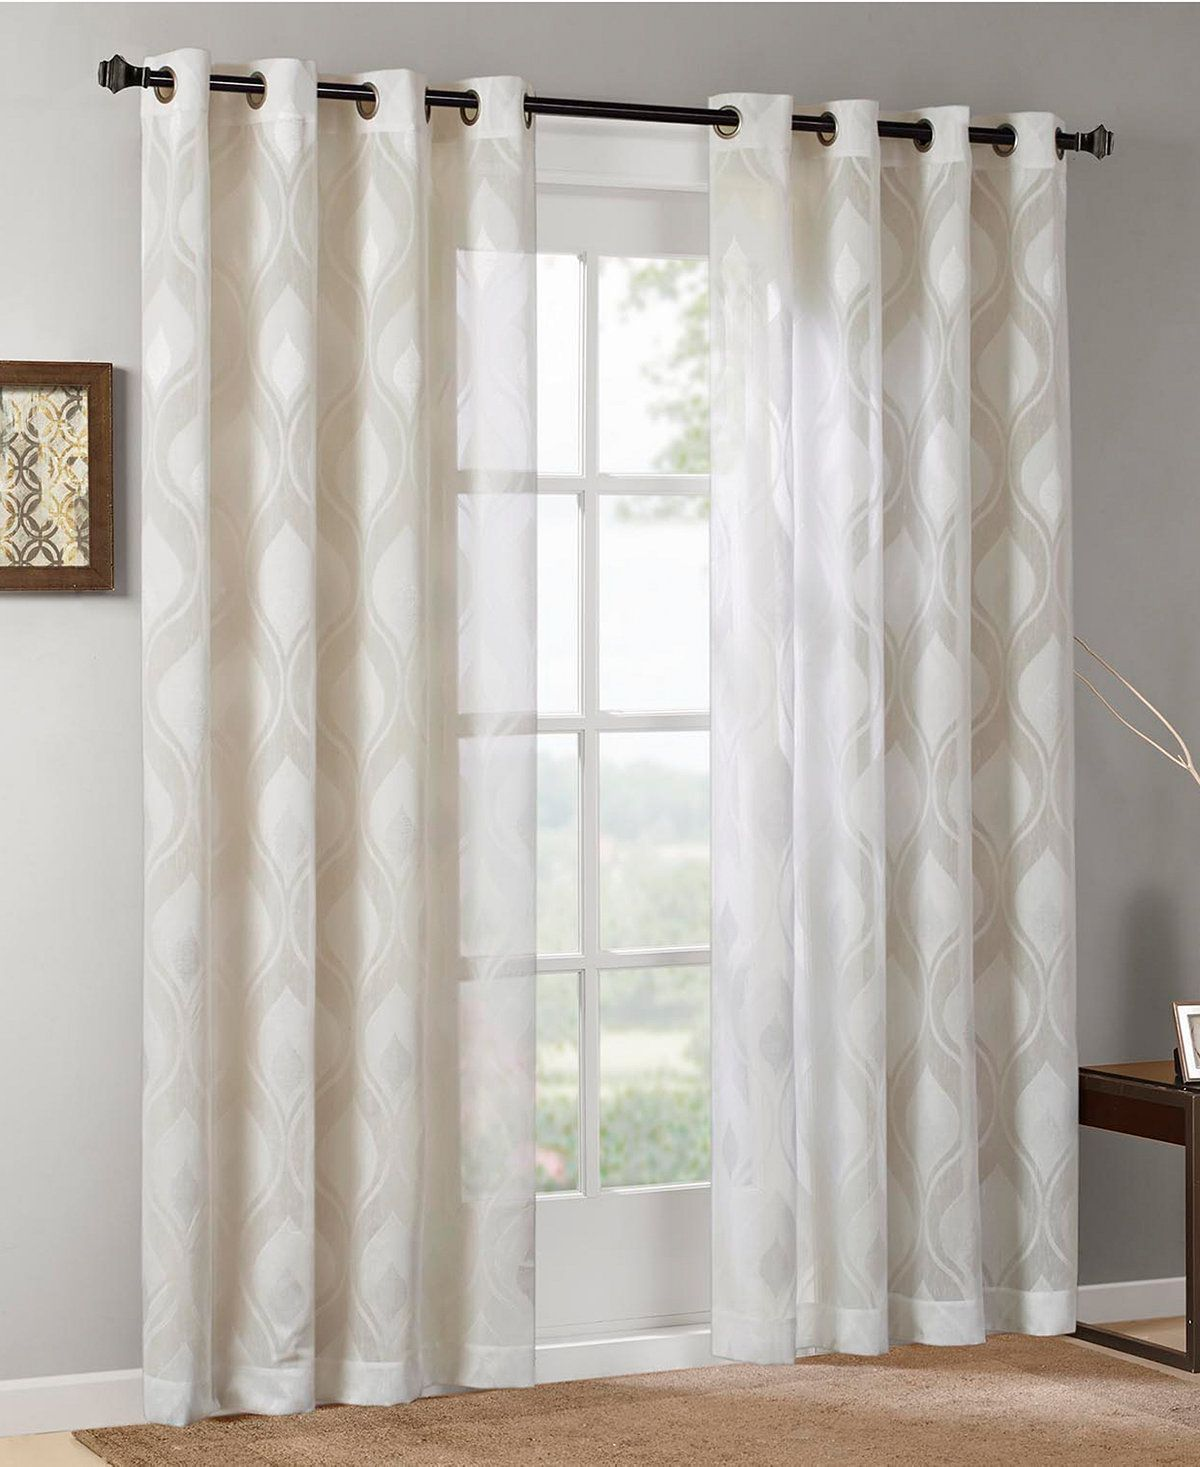 Madison Park Adele 50 X 95 Ogee Jacquard Sheer Grommet Window Panel Window Treatments For The Home Macy S Panel Curtains Curtains Home Decor